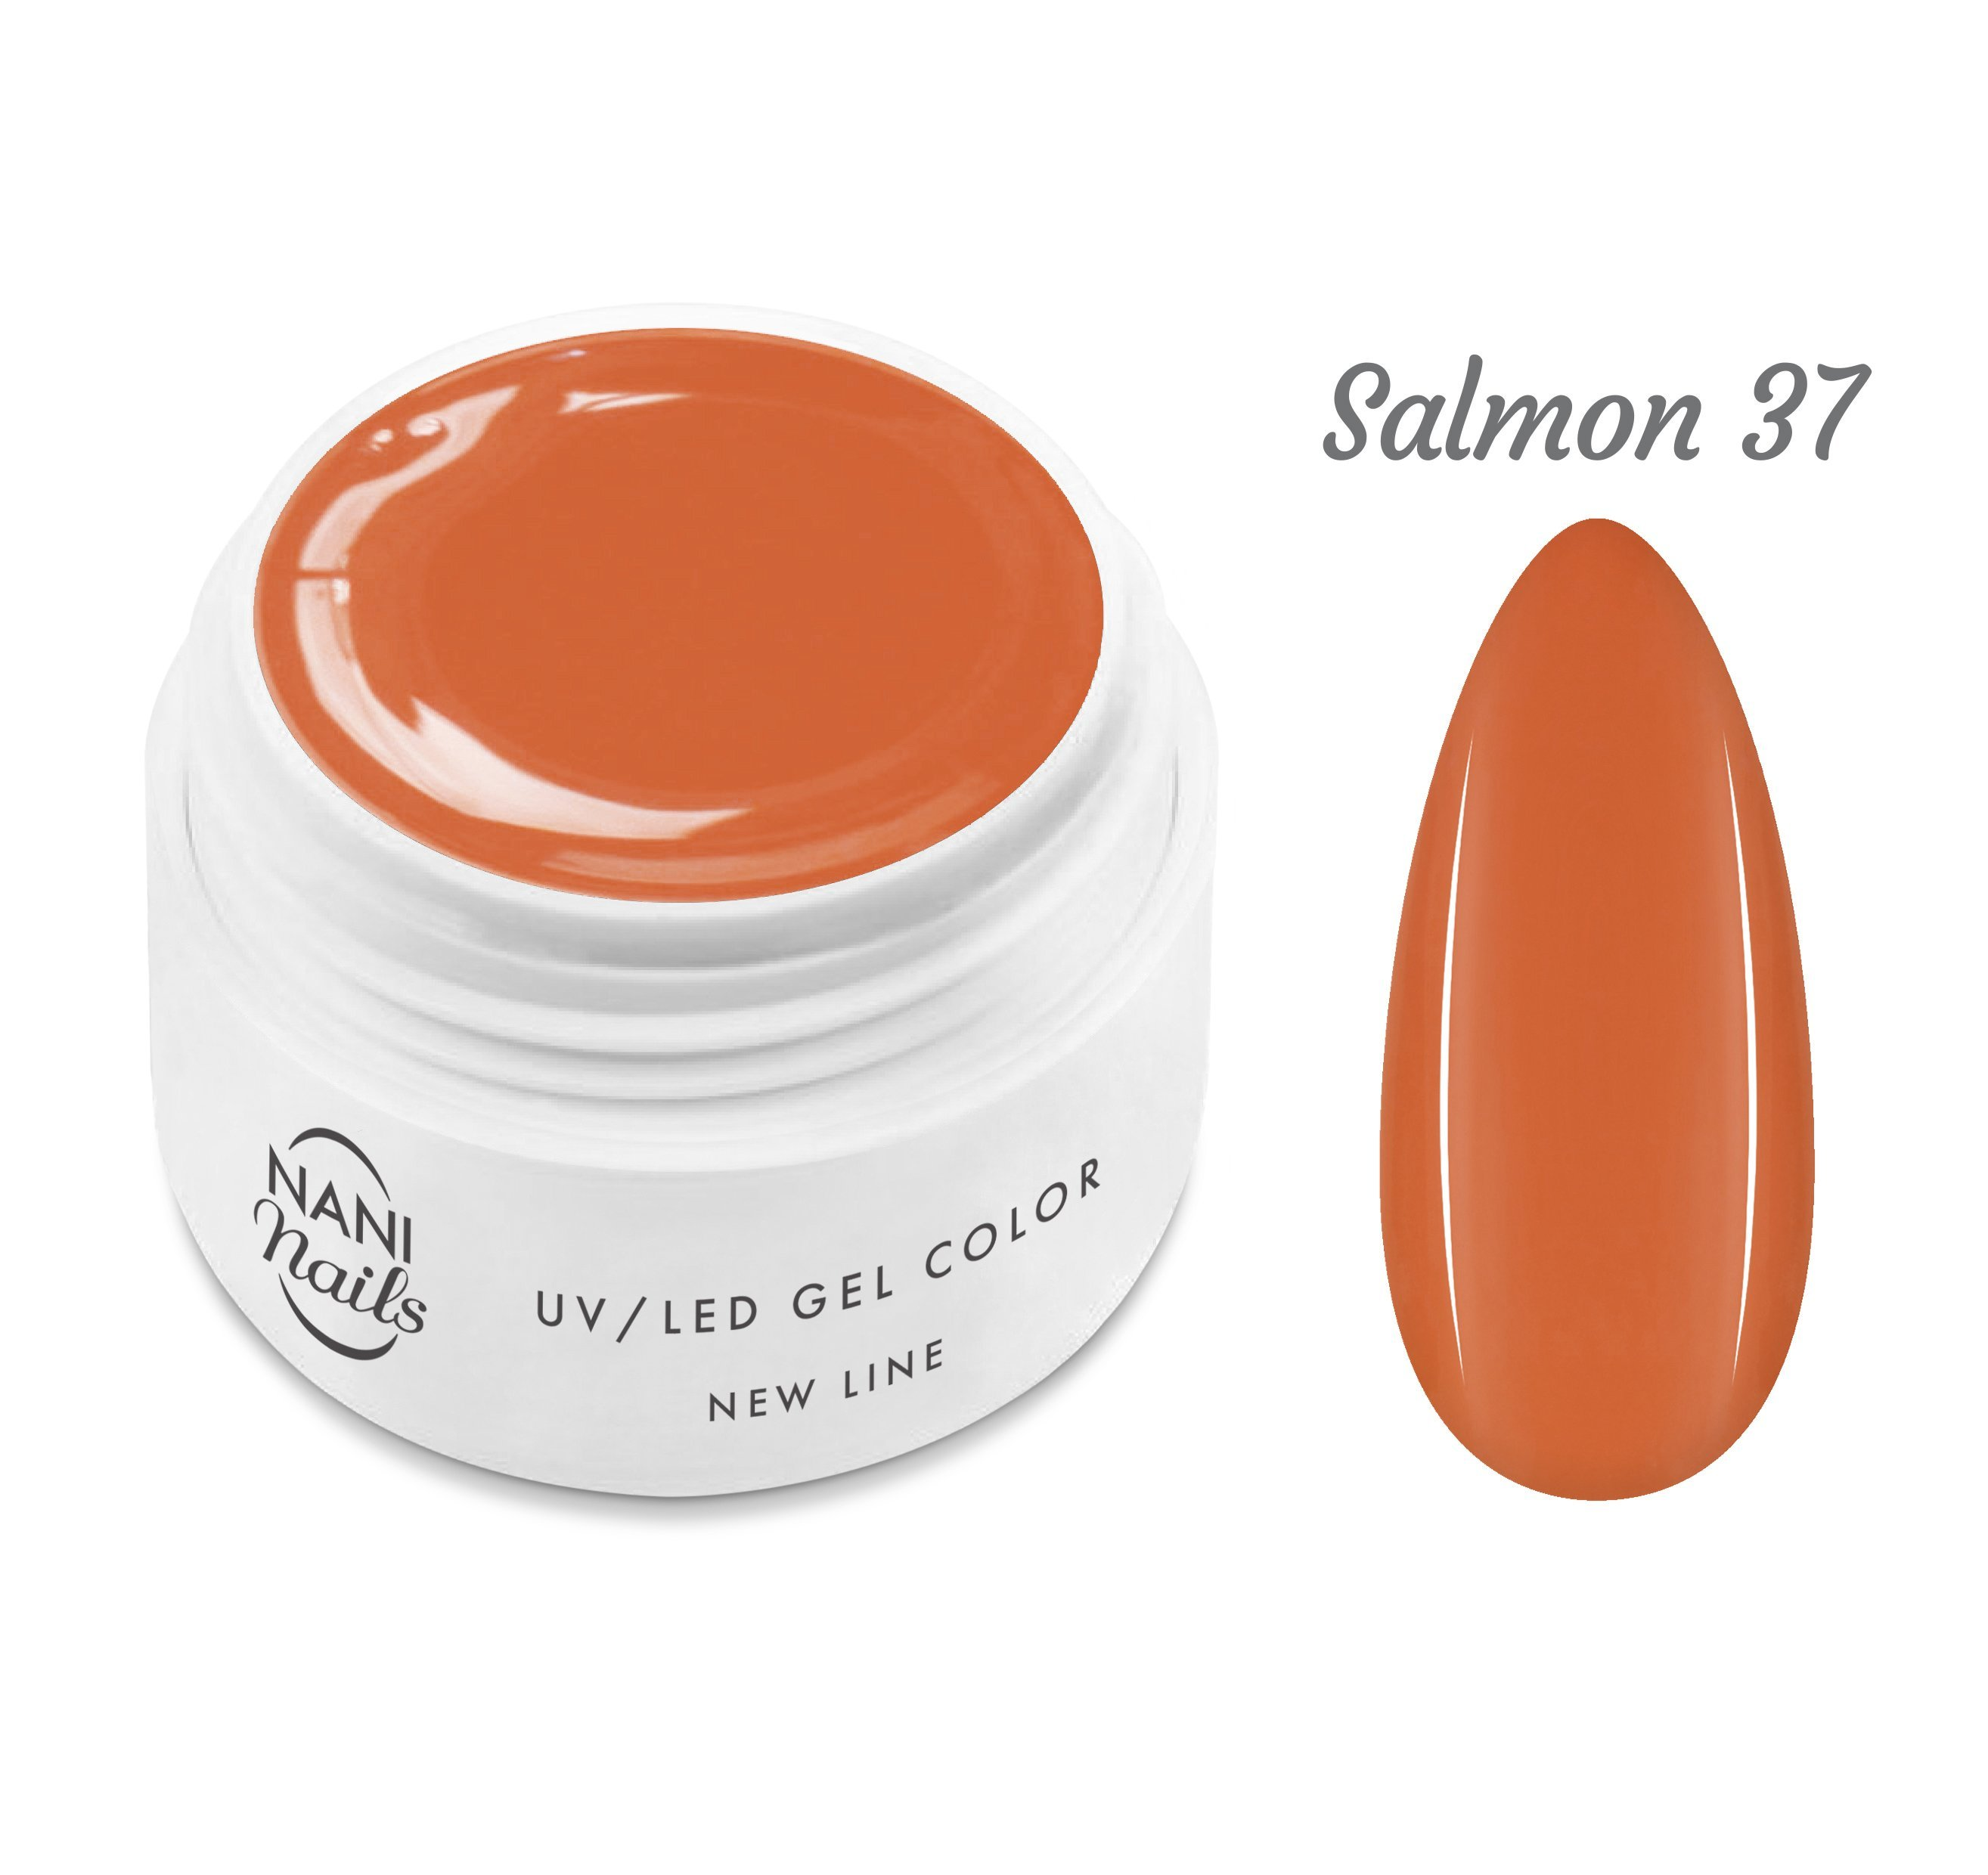 NANI UV gél New Line 5 ml - Salmon